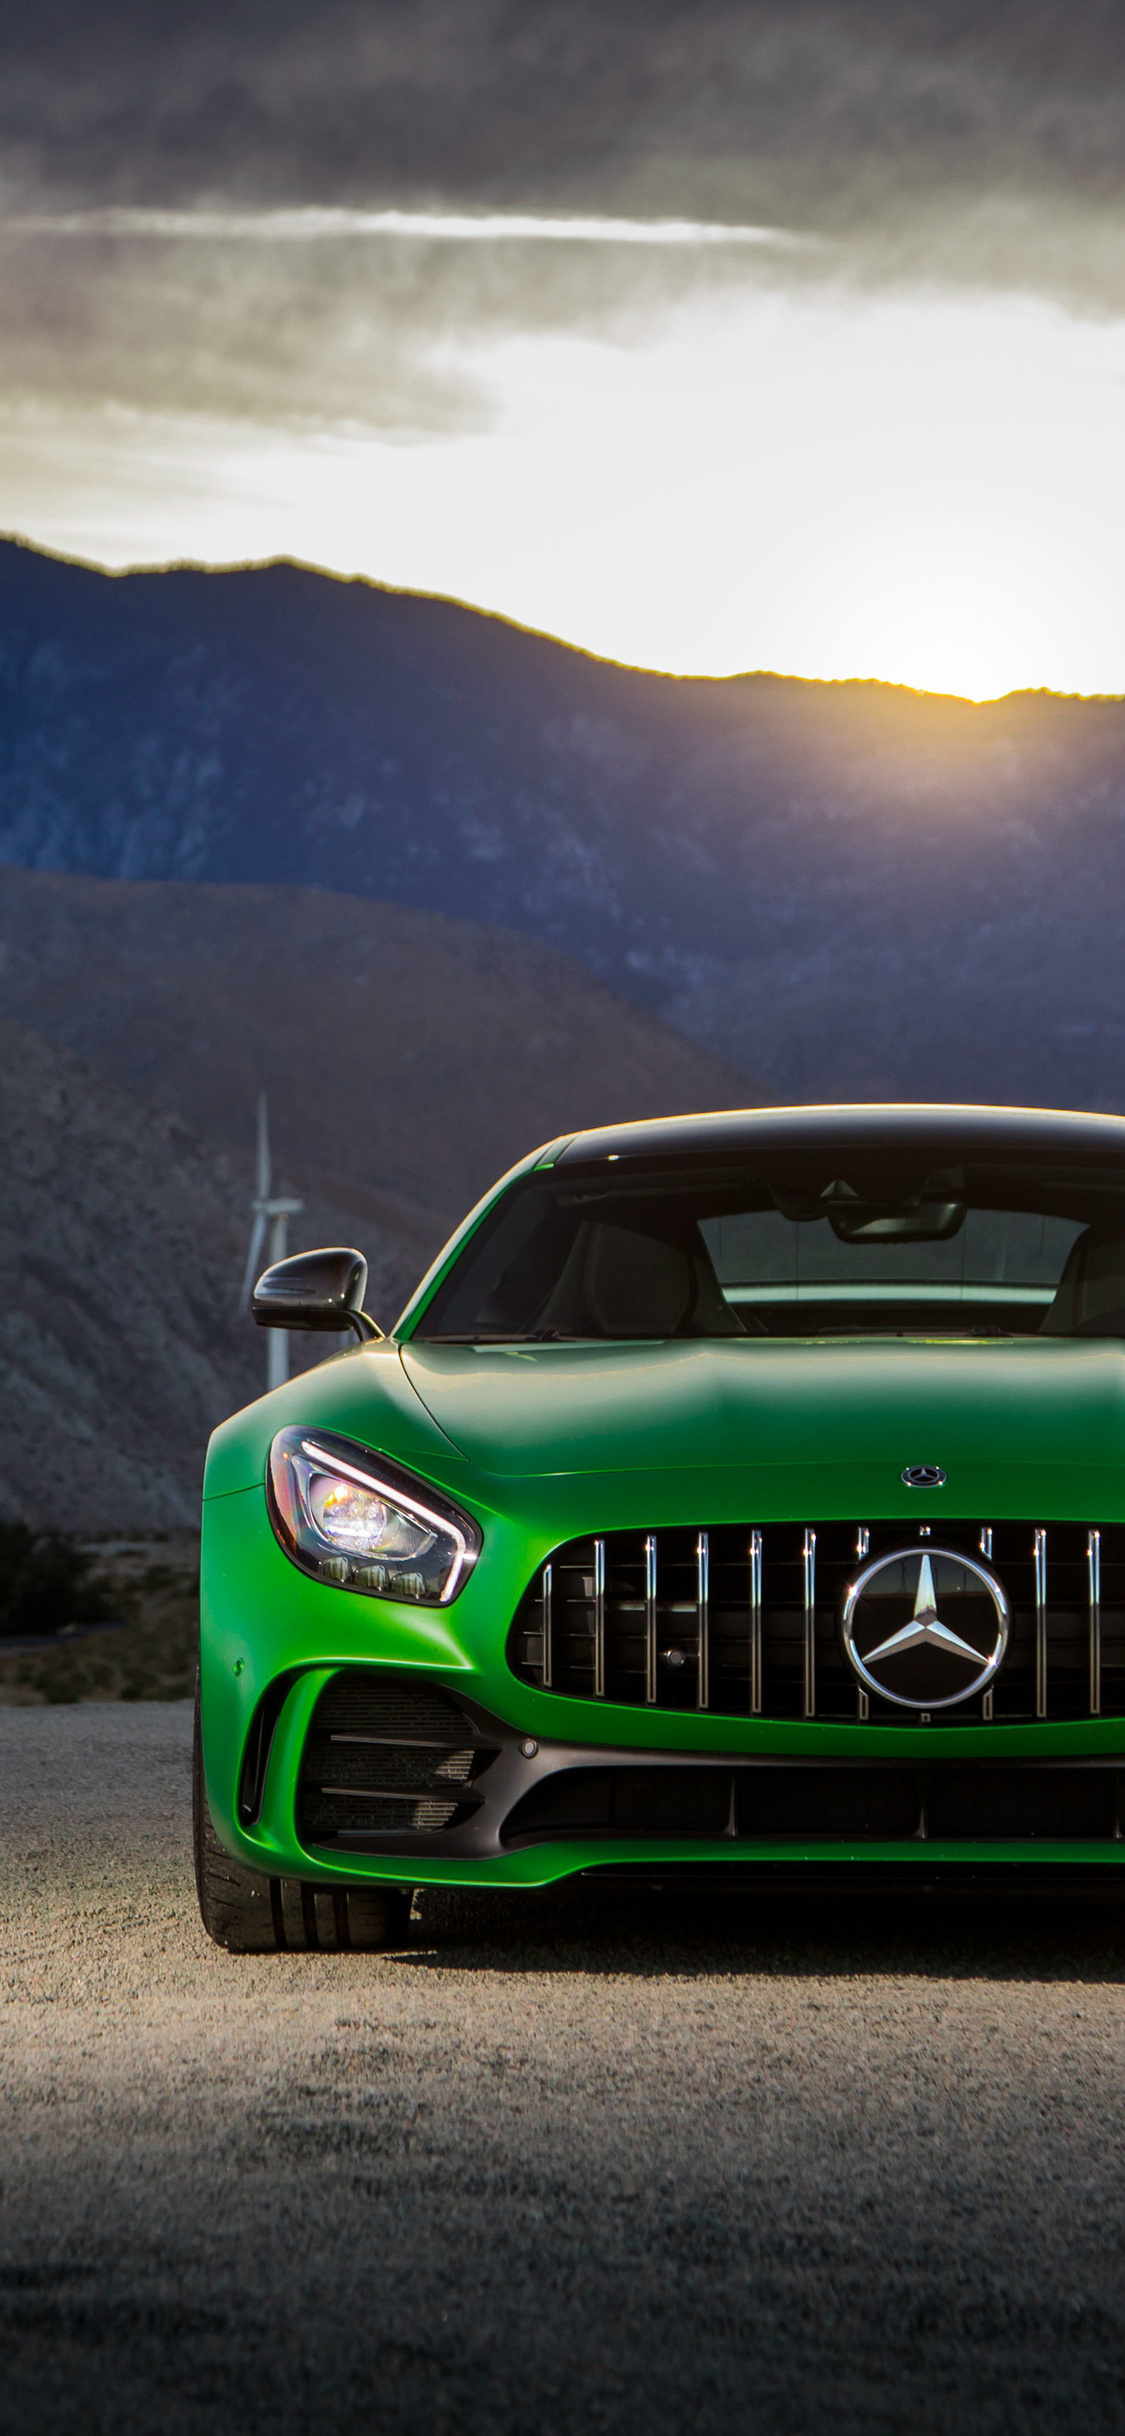 1125x2436 Mercedes Amg Gt R 2018 Iphone Xs Iphone 10 Iphone X Hd 4k